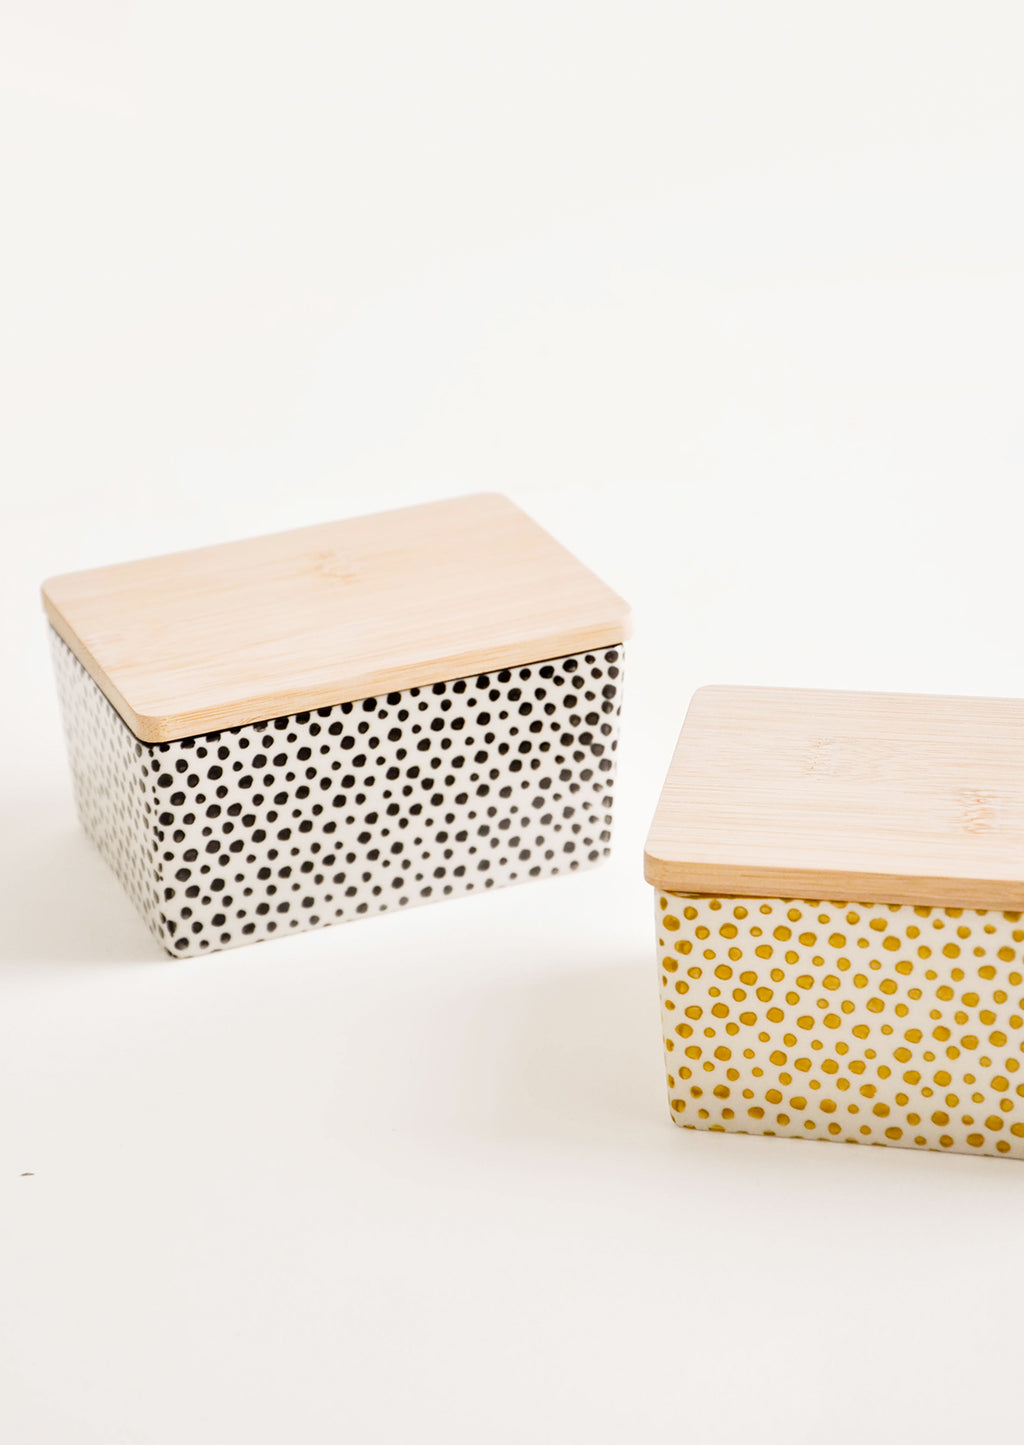 2: Spotted Ceramic Butter Box in Black & Yellow - LEIF